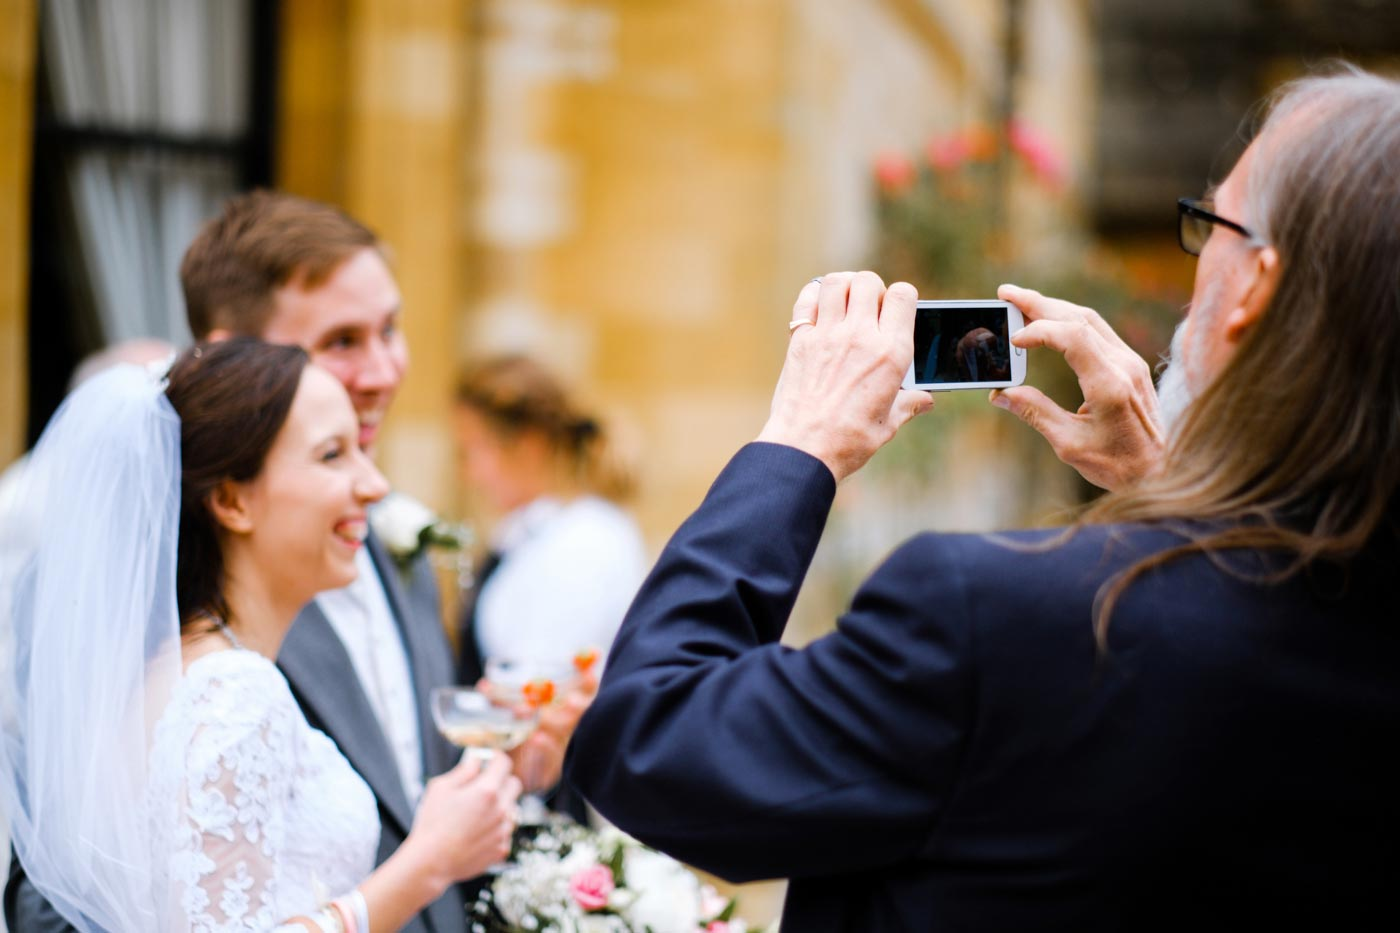 Guest taking photo on his phone of the bride and groom